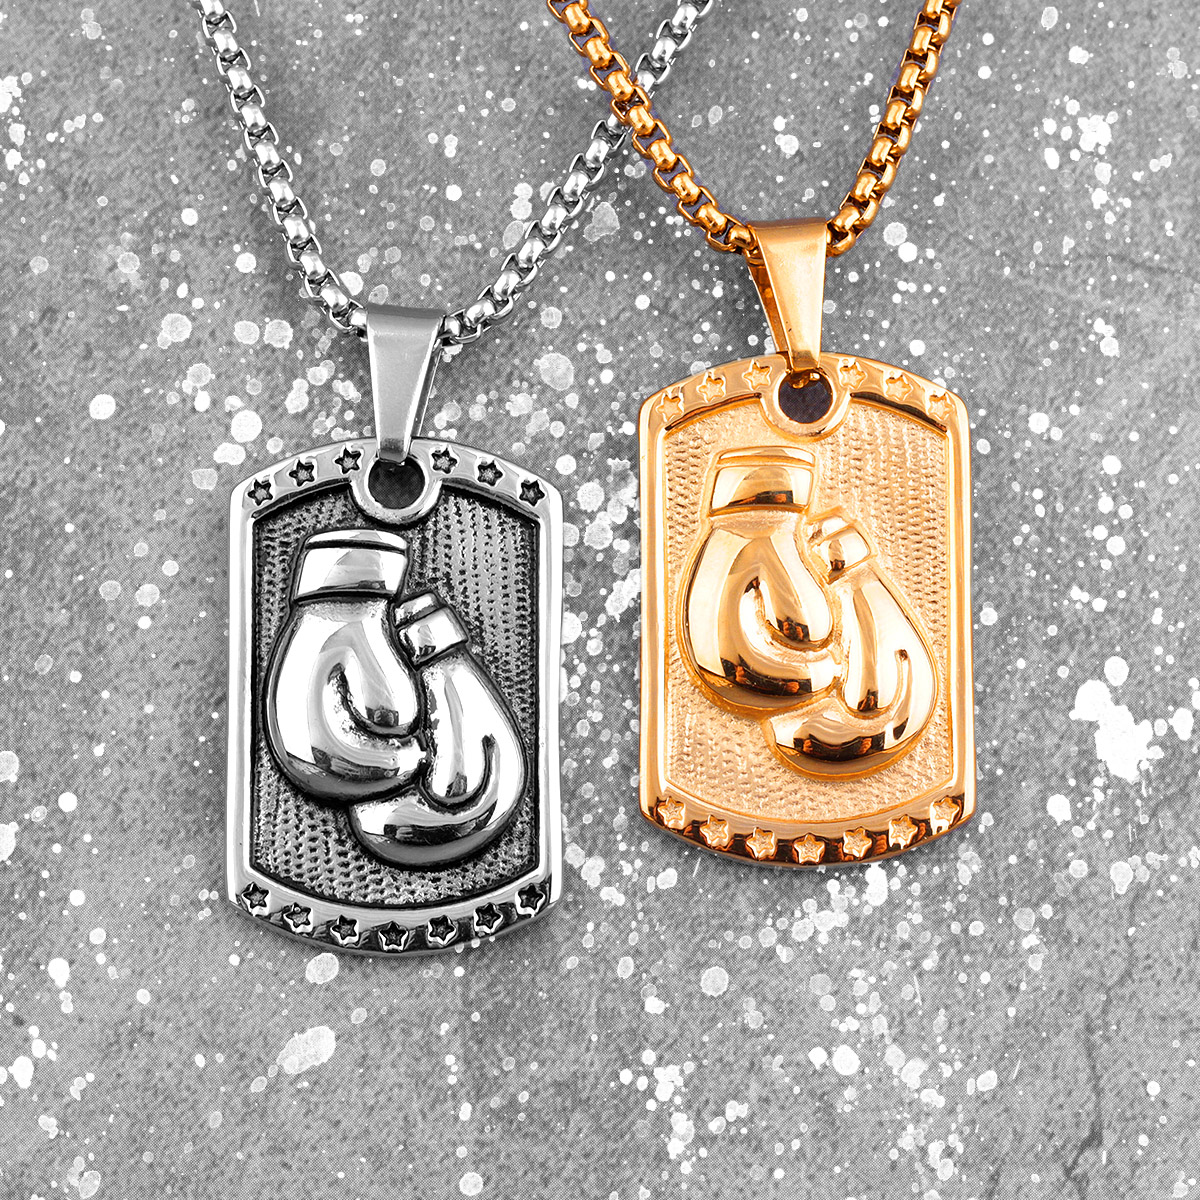 Necklaces,Jewelry,Personalized Stainless Steel Men Boxing Glove Charm Fitness Gym Pendant Necklace Vintage Men Hip Hop Jewelry Boyfriend Gifts